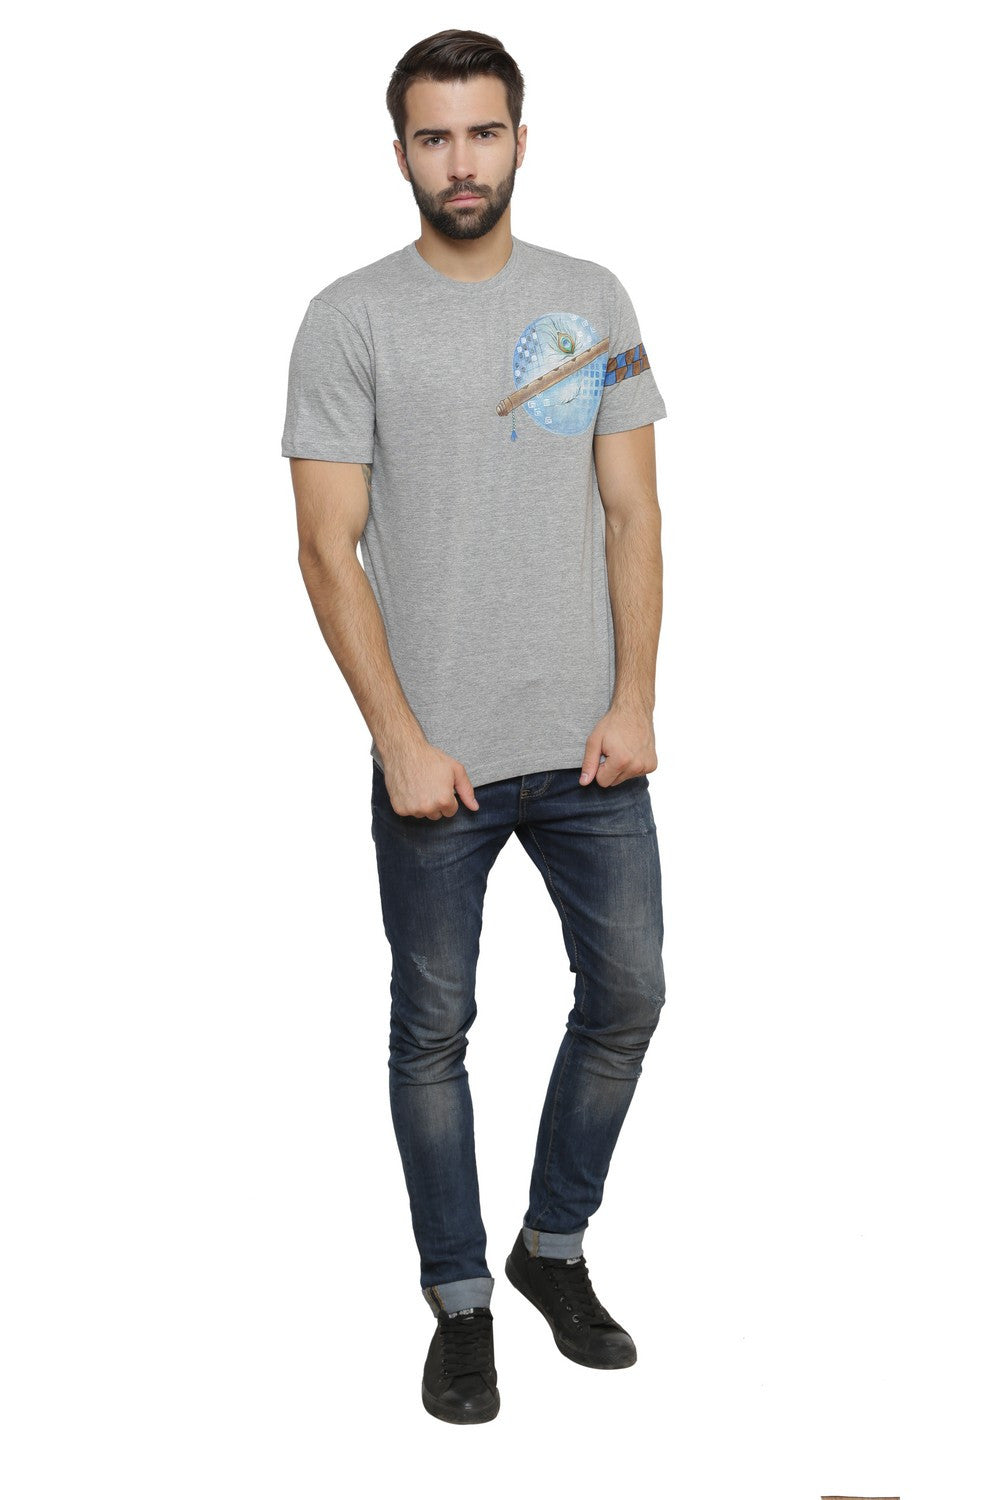 Hand-painted Krishna Elements Grey T-shirt - Rang Rage  - 5